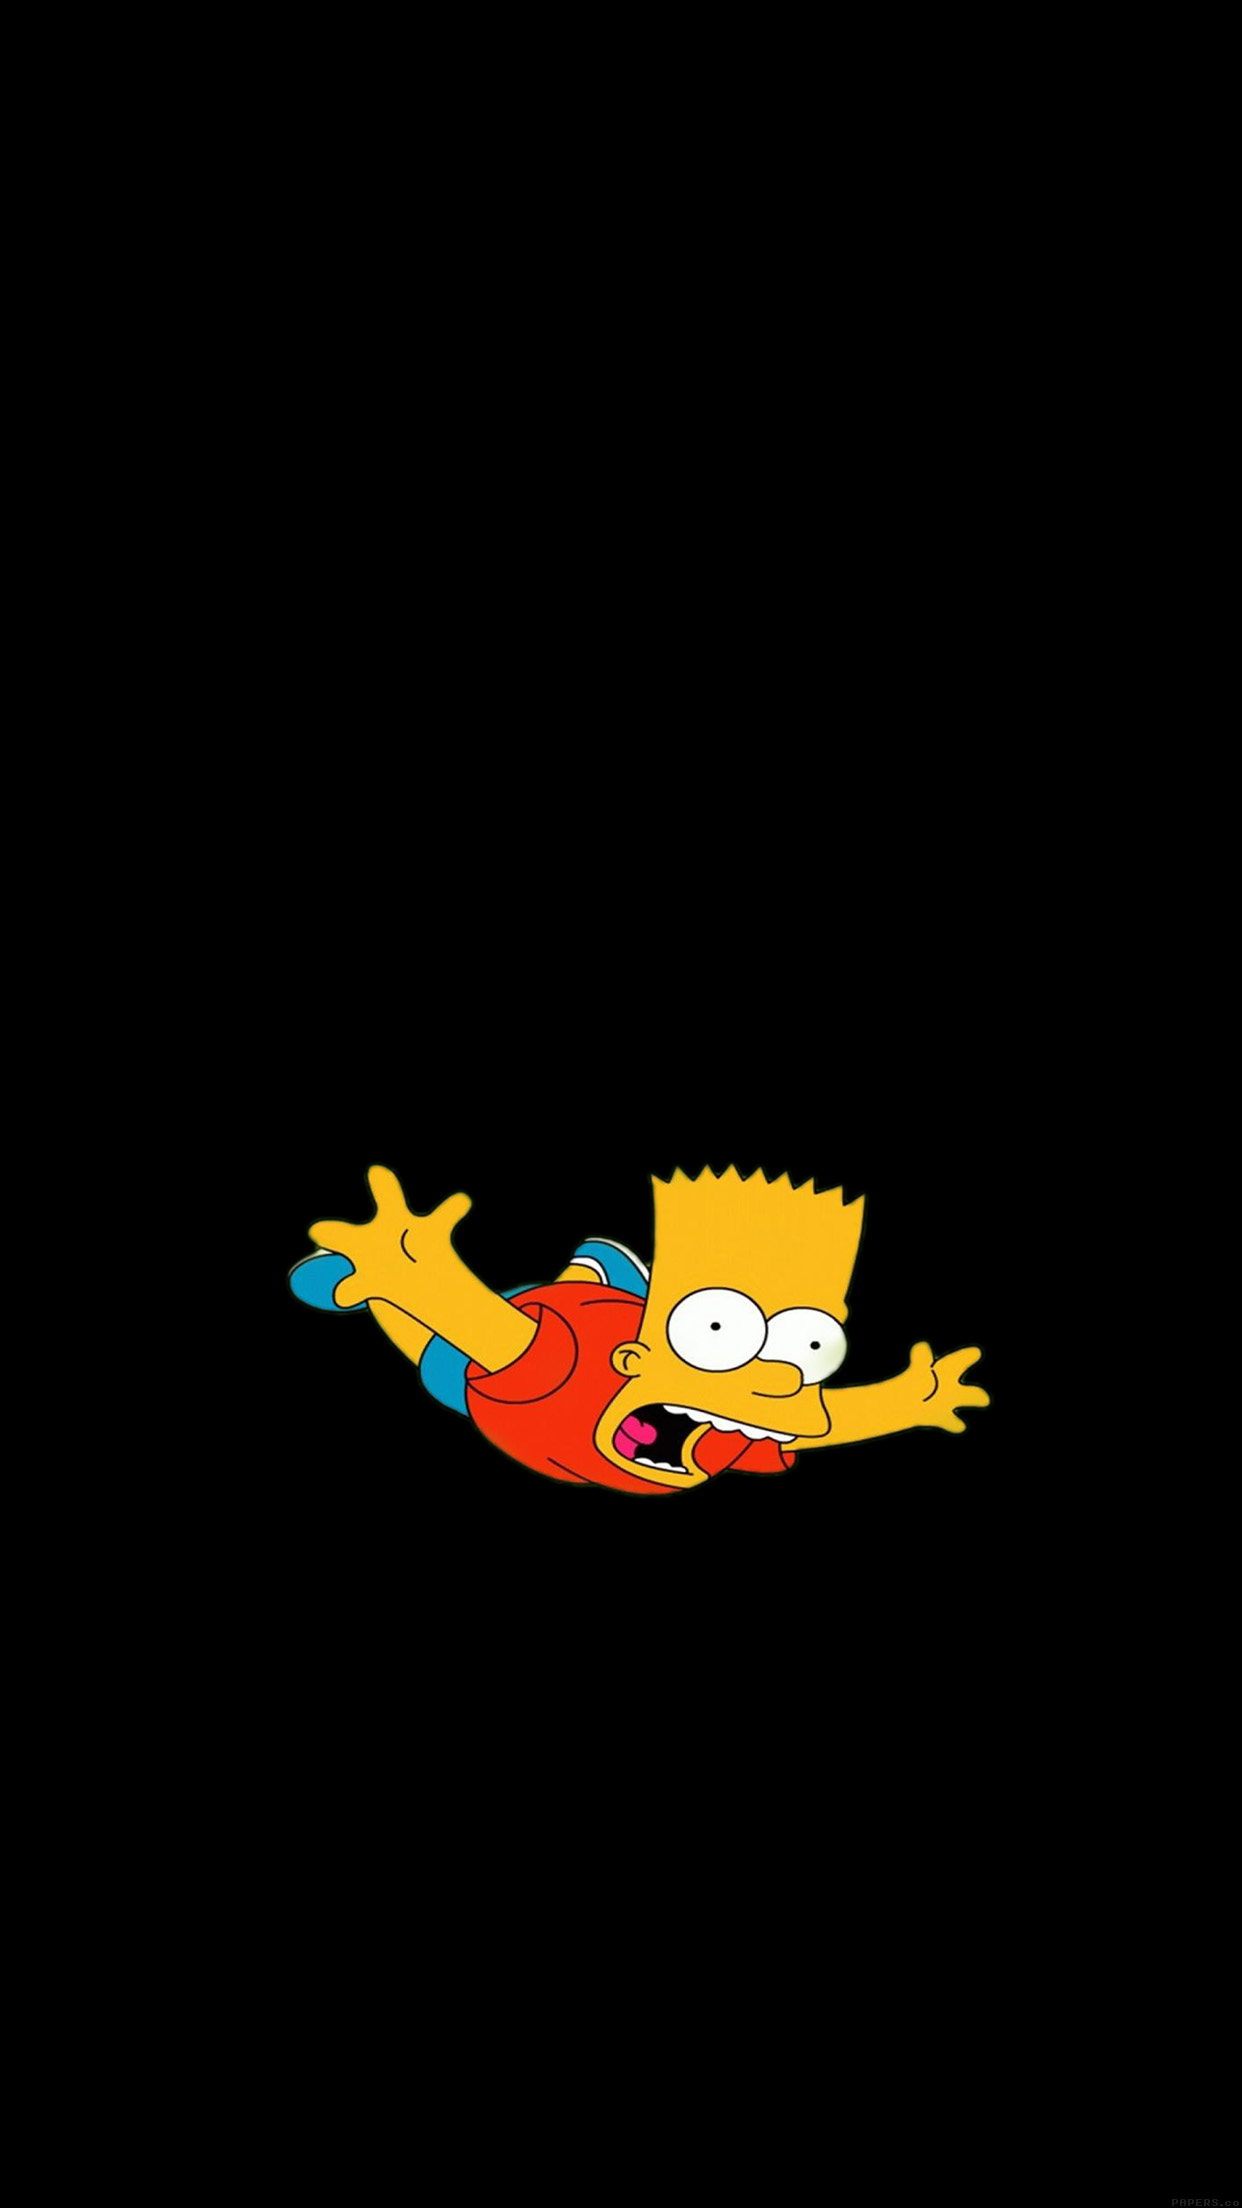 The Simpsons Bart 3wallpapers Iphone Parallax 169 300 Bart Simpson